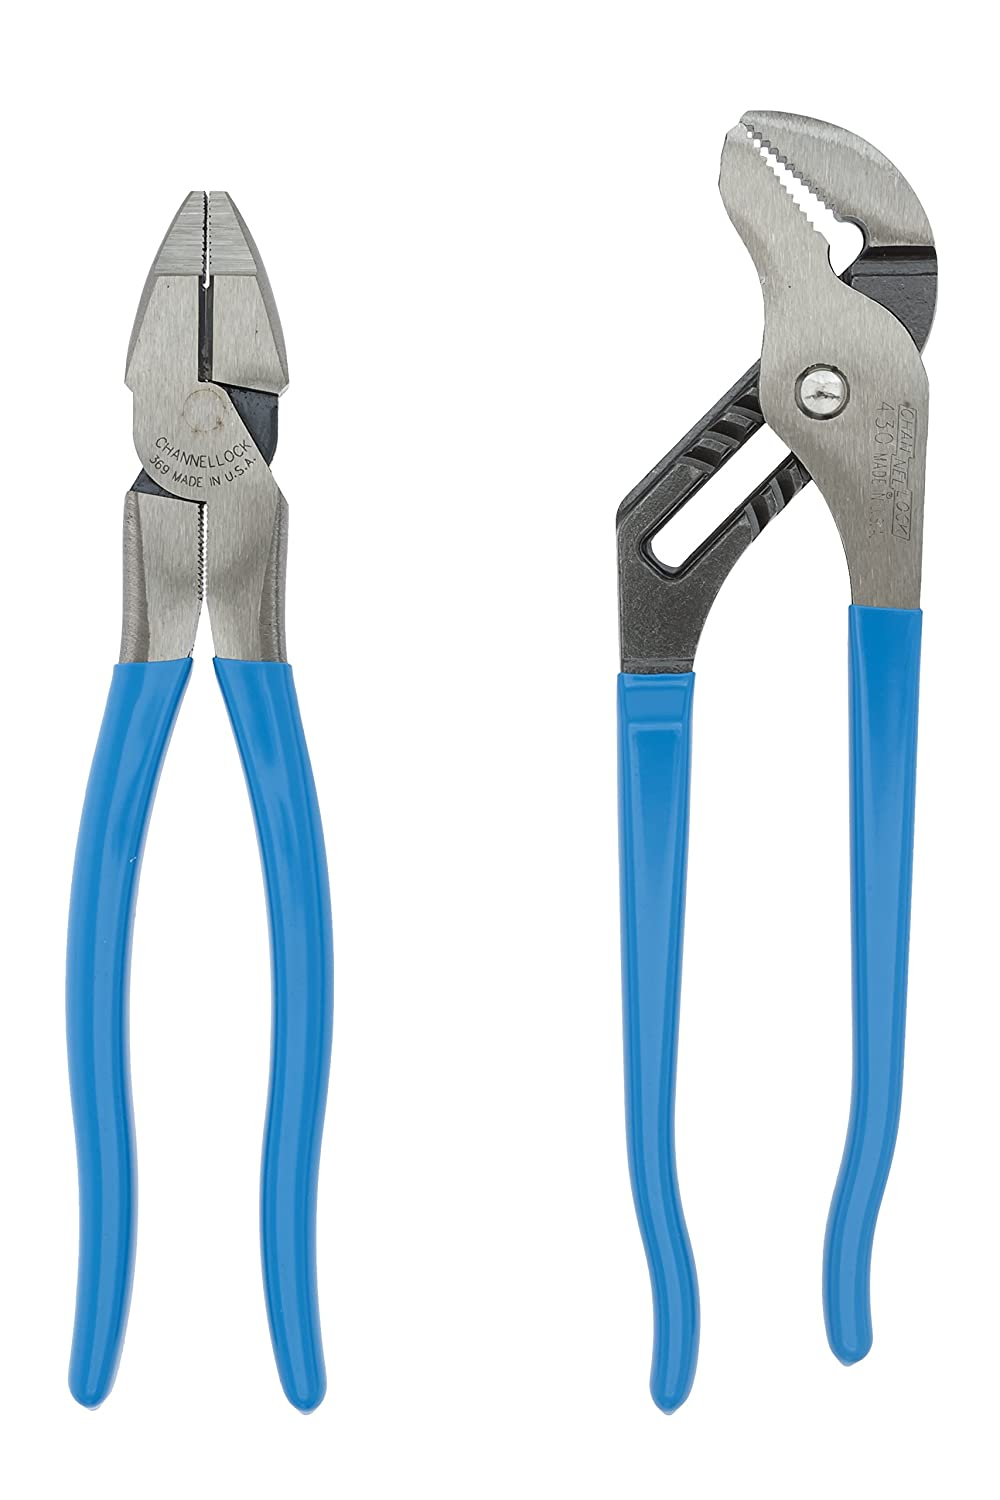 430 and 369 Channellock GS-10 2-Piece Plier Set